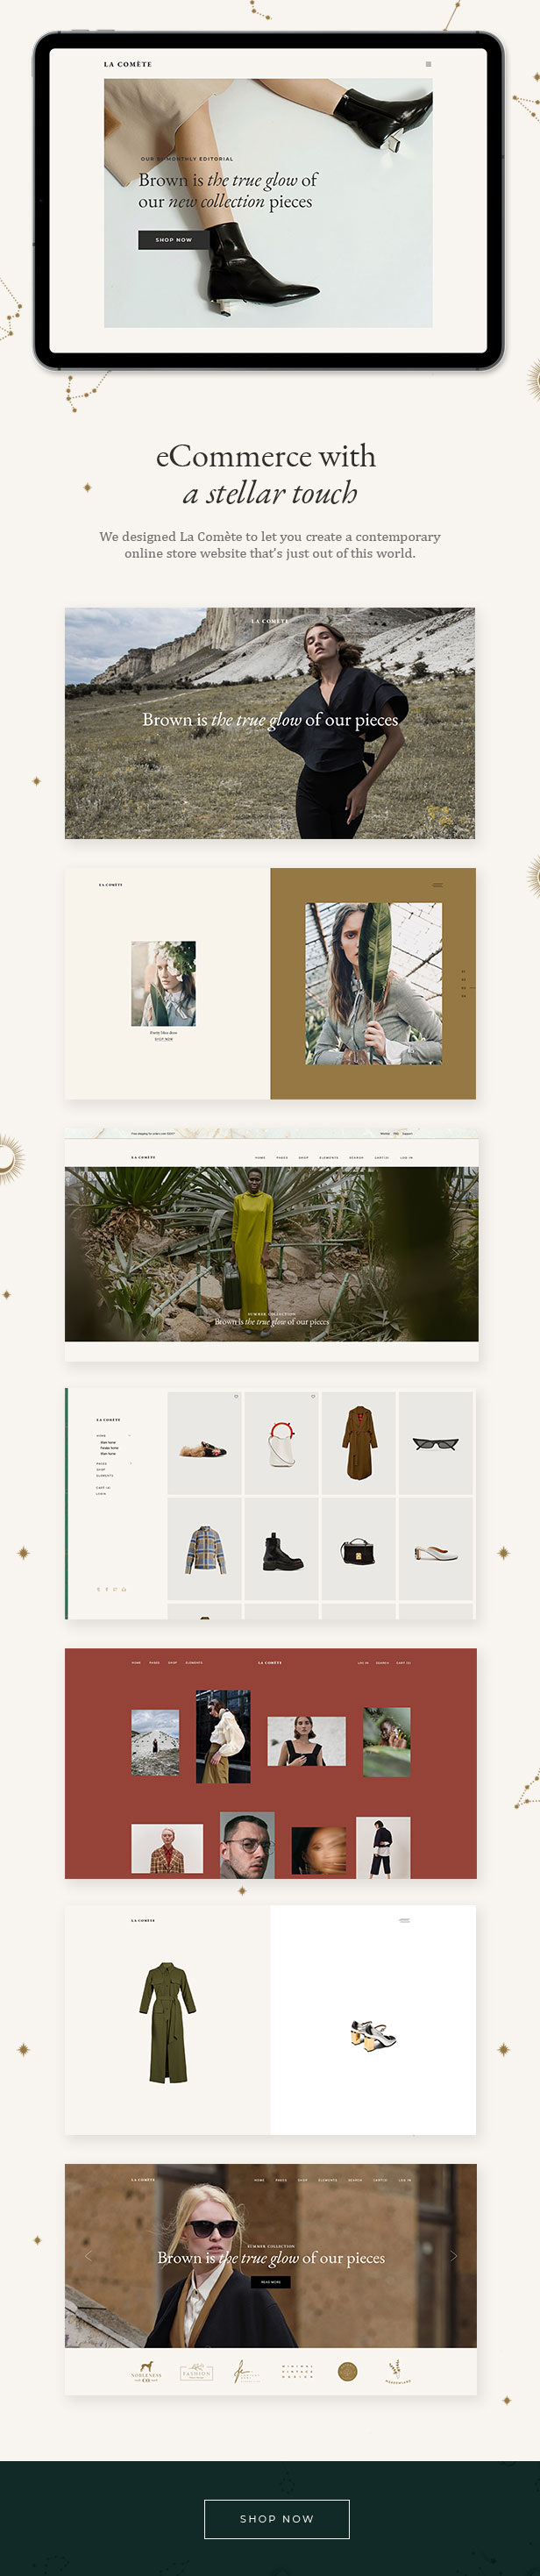 La Comète - Fashion and Clothing Store Theme - 1